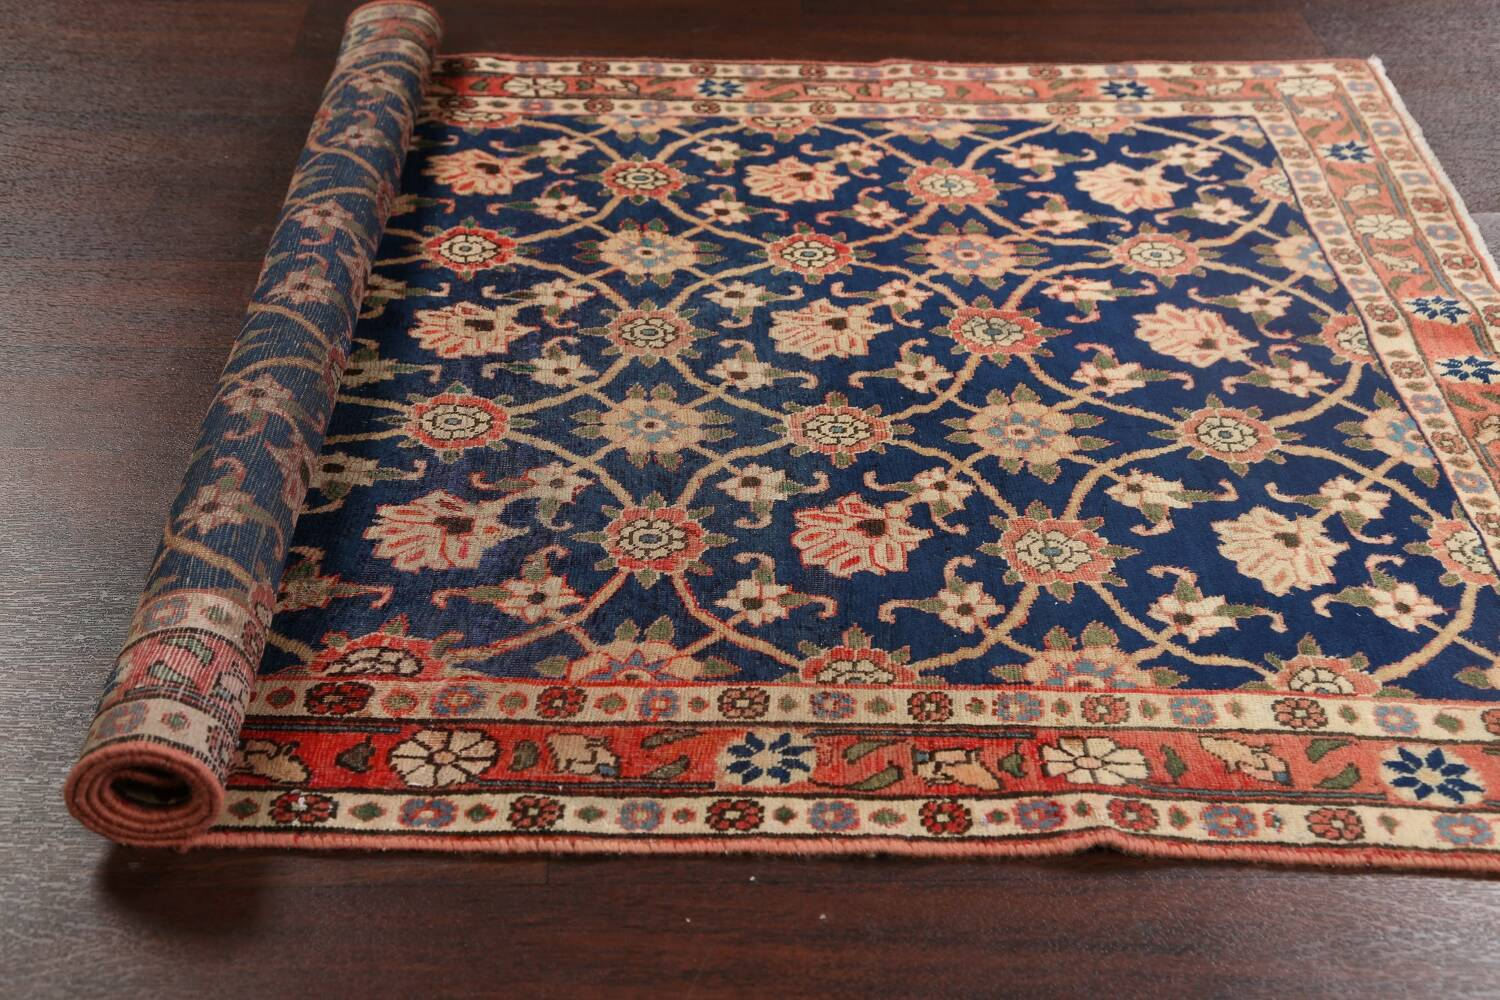 Antique Vegetable Dye Isfahan Persian Area Rug 3x5 image 15